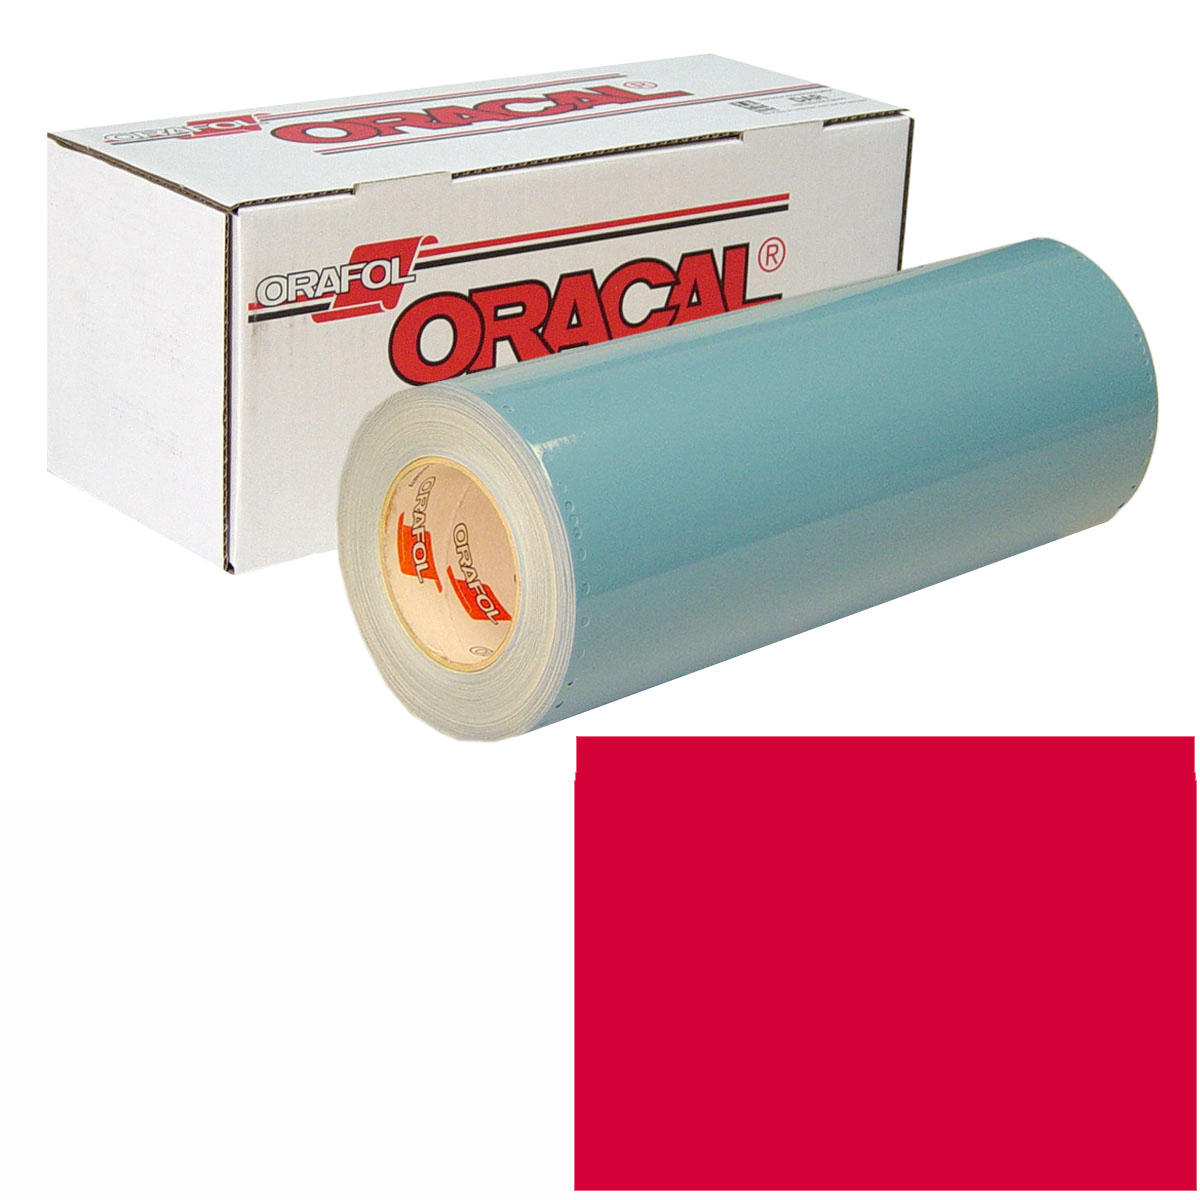 ORACAL 751 30In X 10Yd 032 Light Red